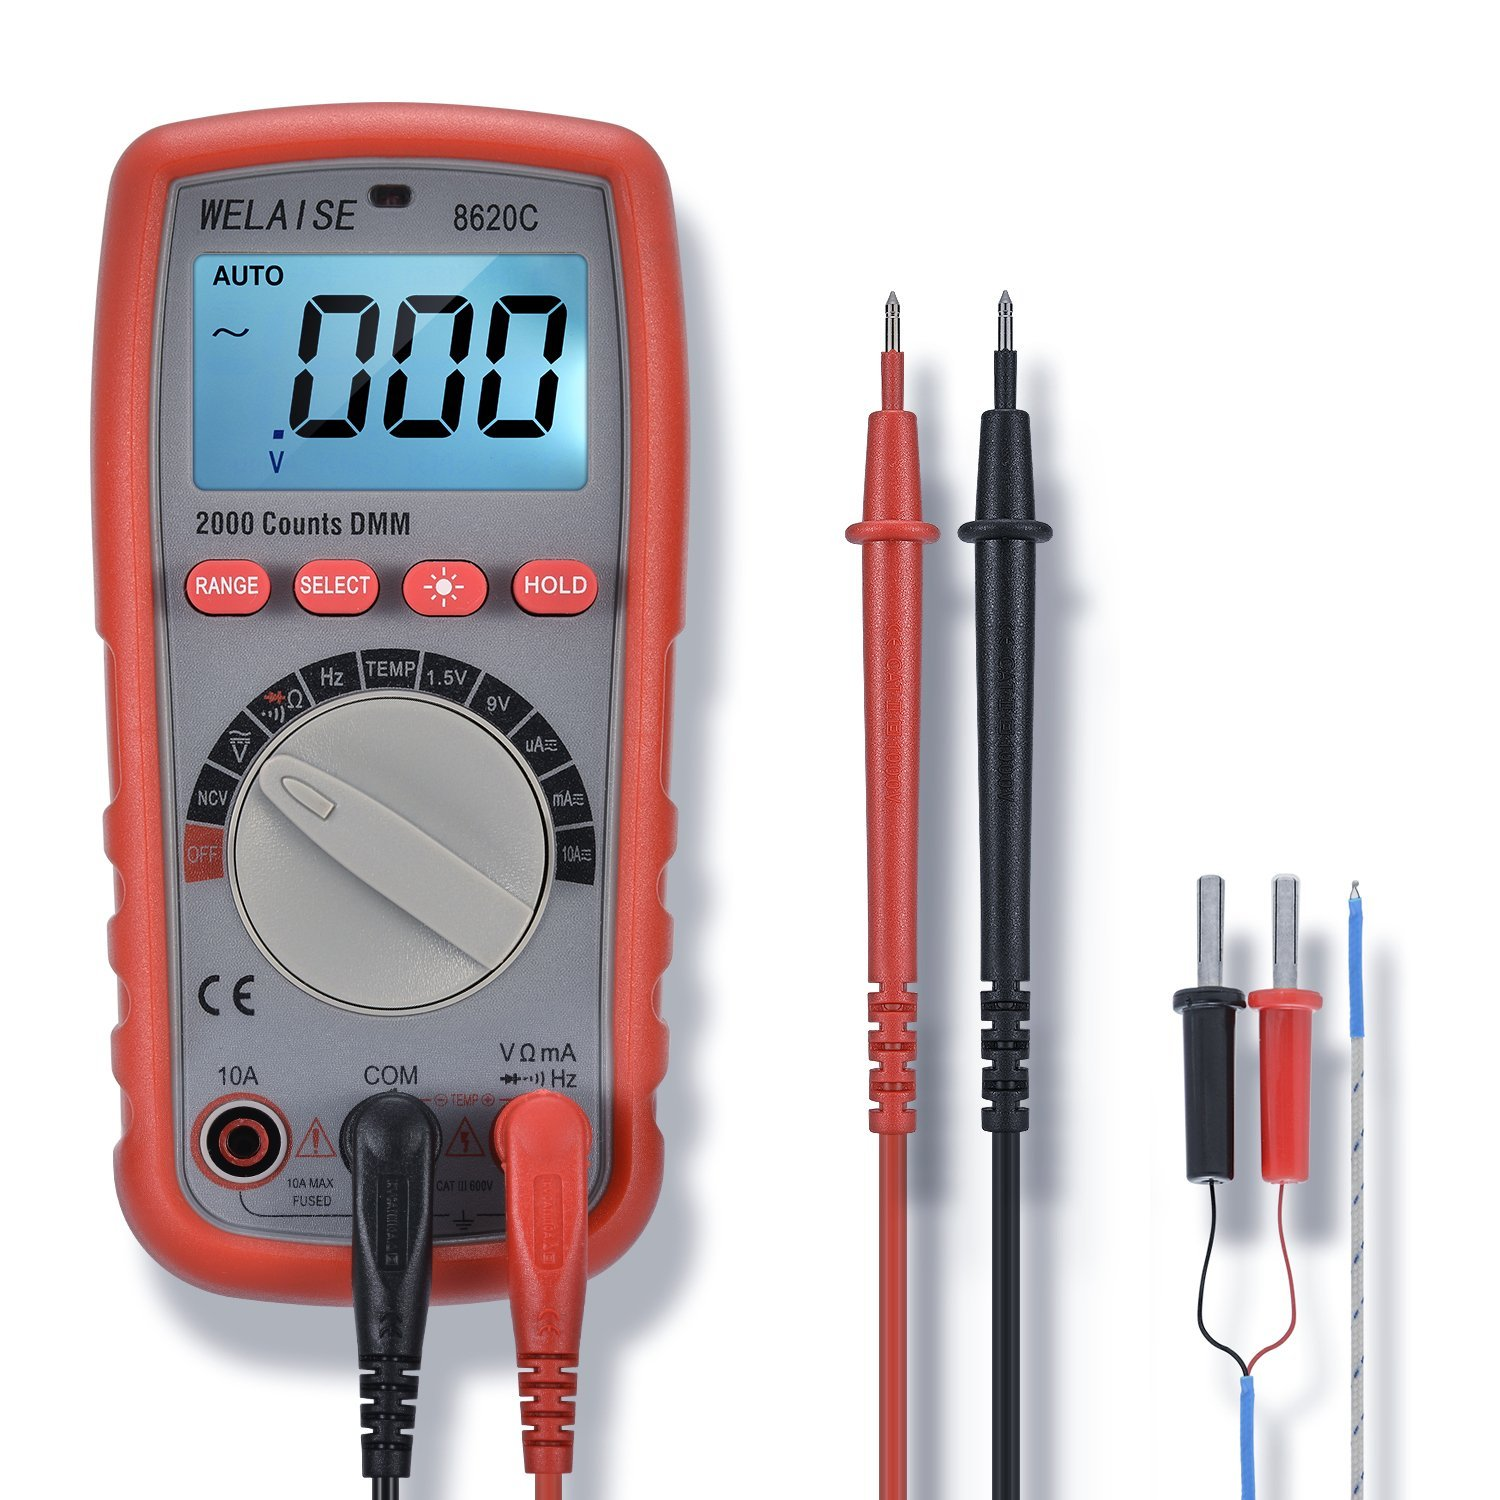 Digital Multimeter Welaise Auto Ranging Non Contact Voltage Led Display Voltmeter Besides Dc Circuit Detection Electronic Ac Ohm Volt Meter Multi Tester W Temperature Battery Test Amazon